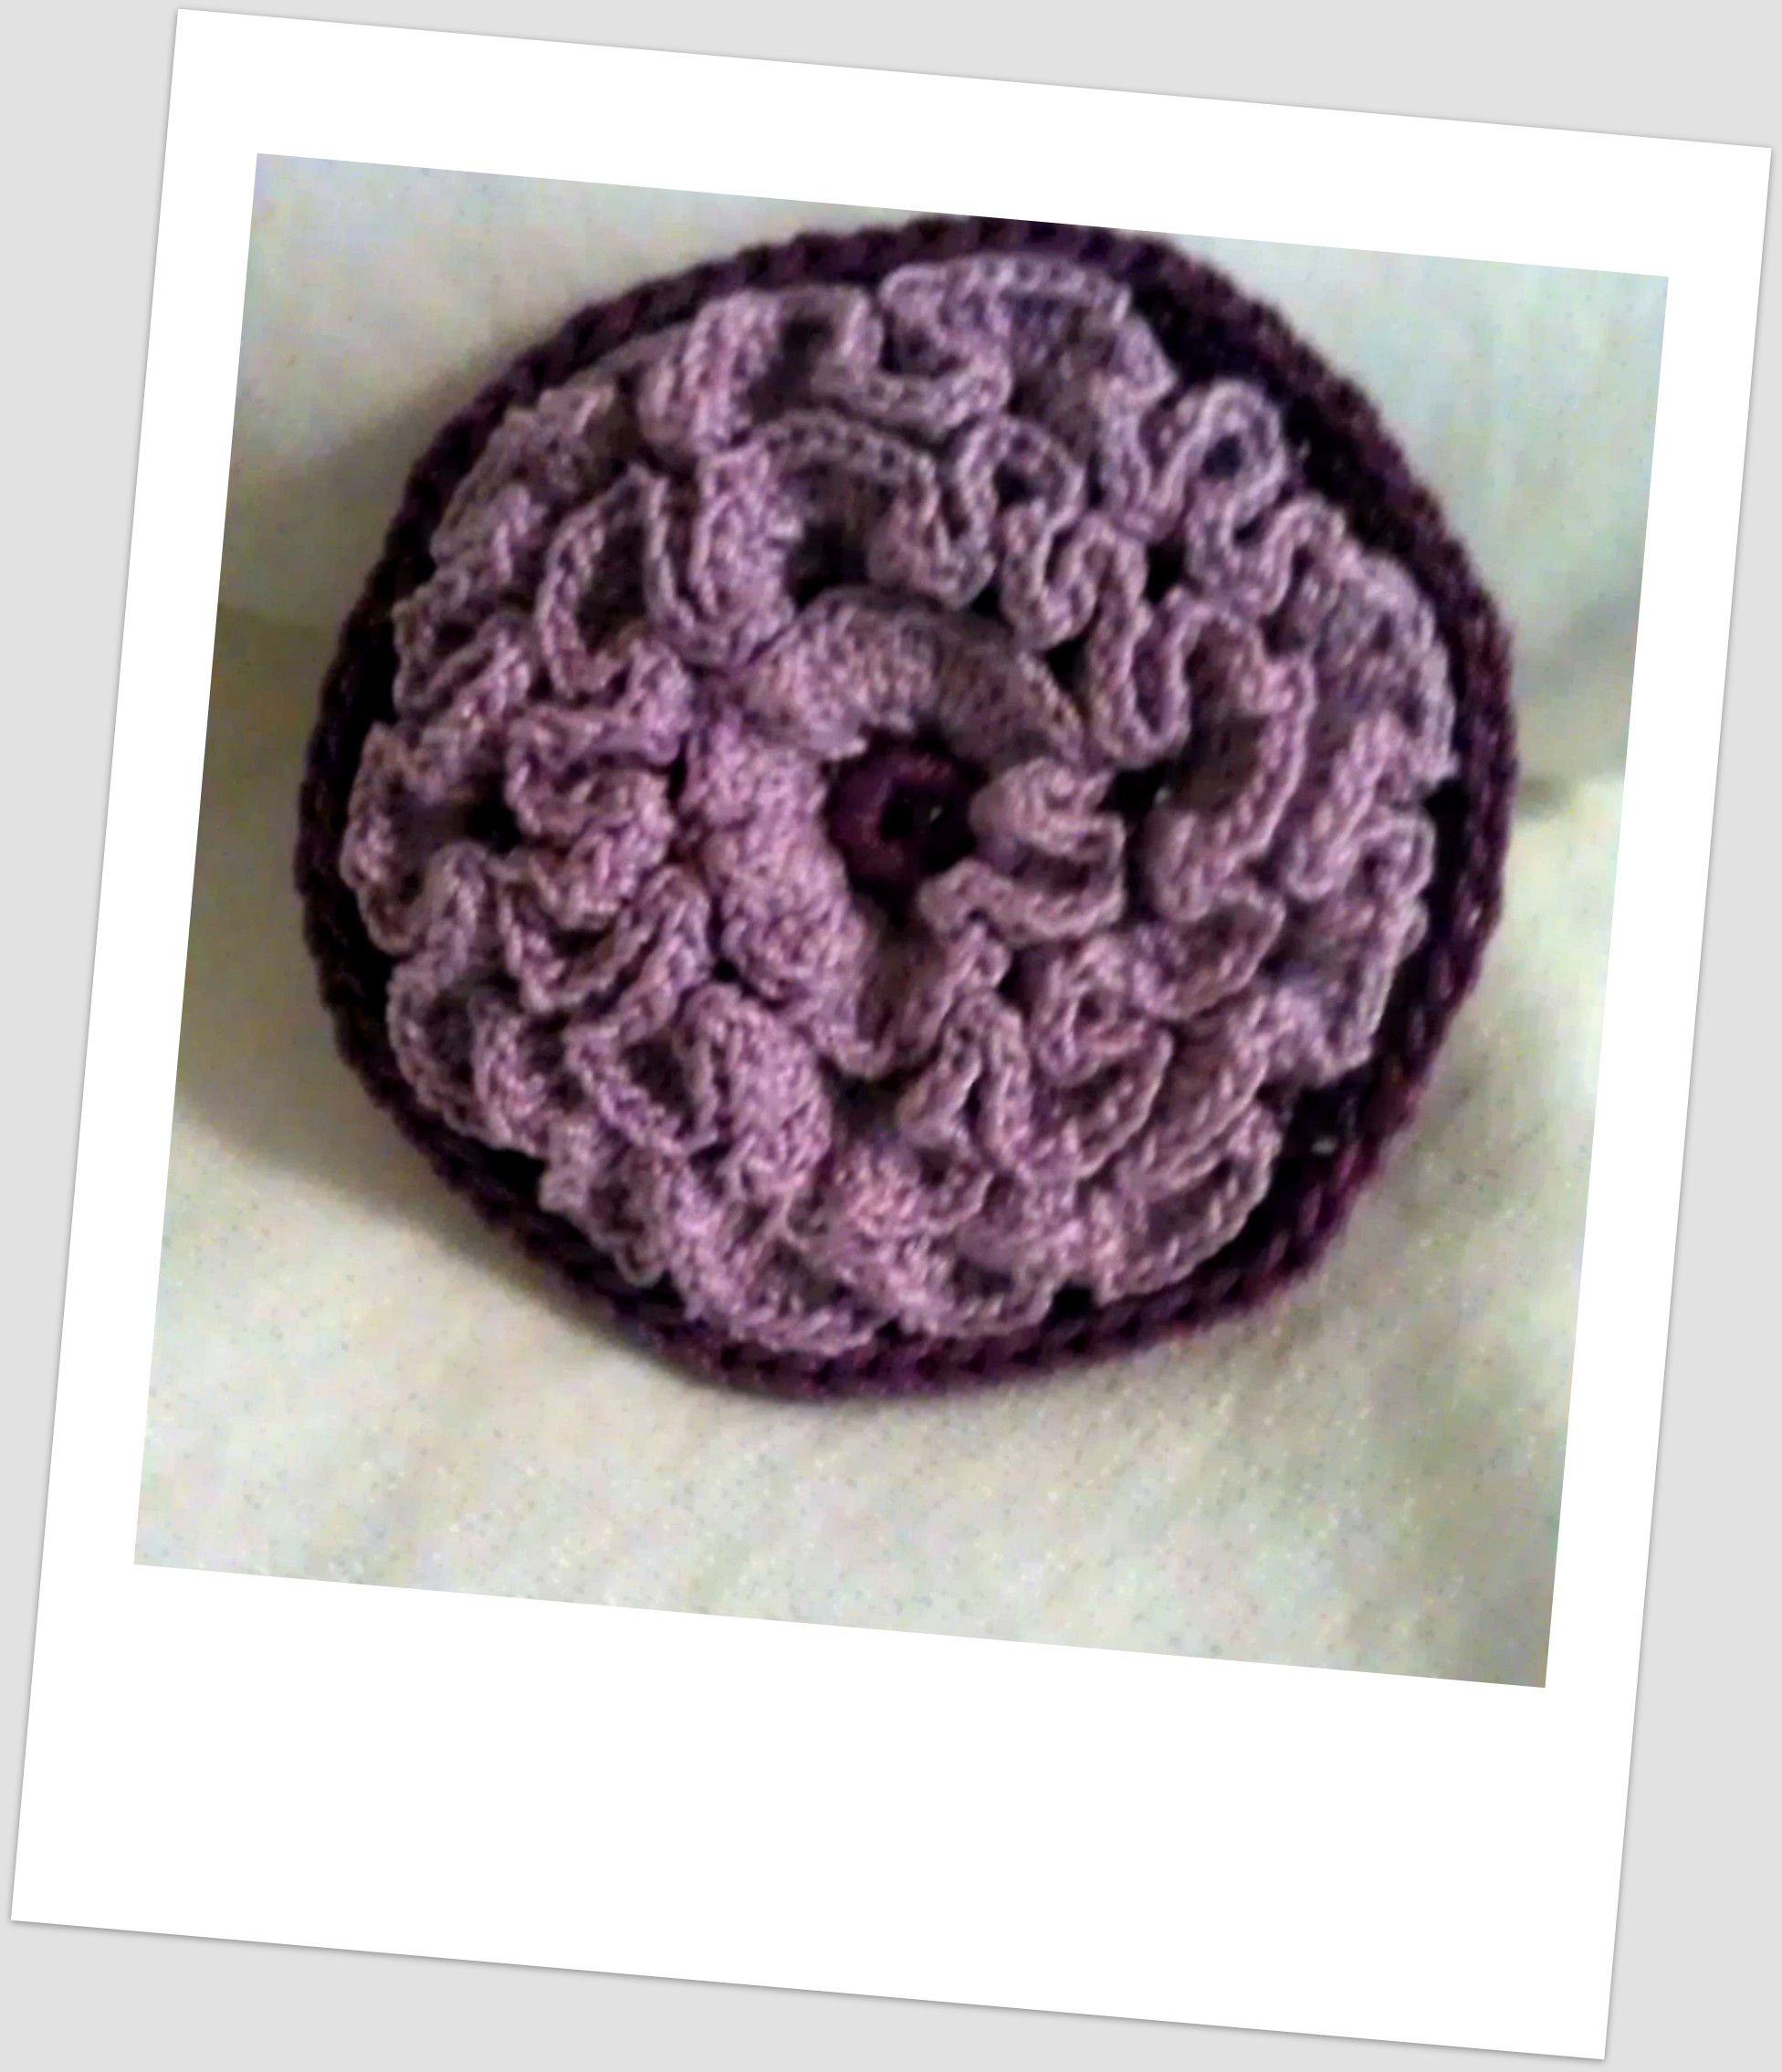 crosetatebucuresti crocheted etat a crosetate broochhandmade pin handmadeisbetter handmade brooches bro handiamade cro brooch